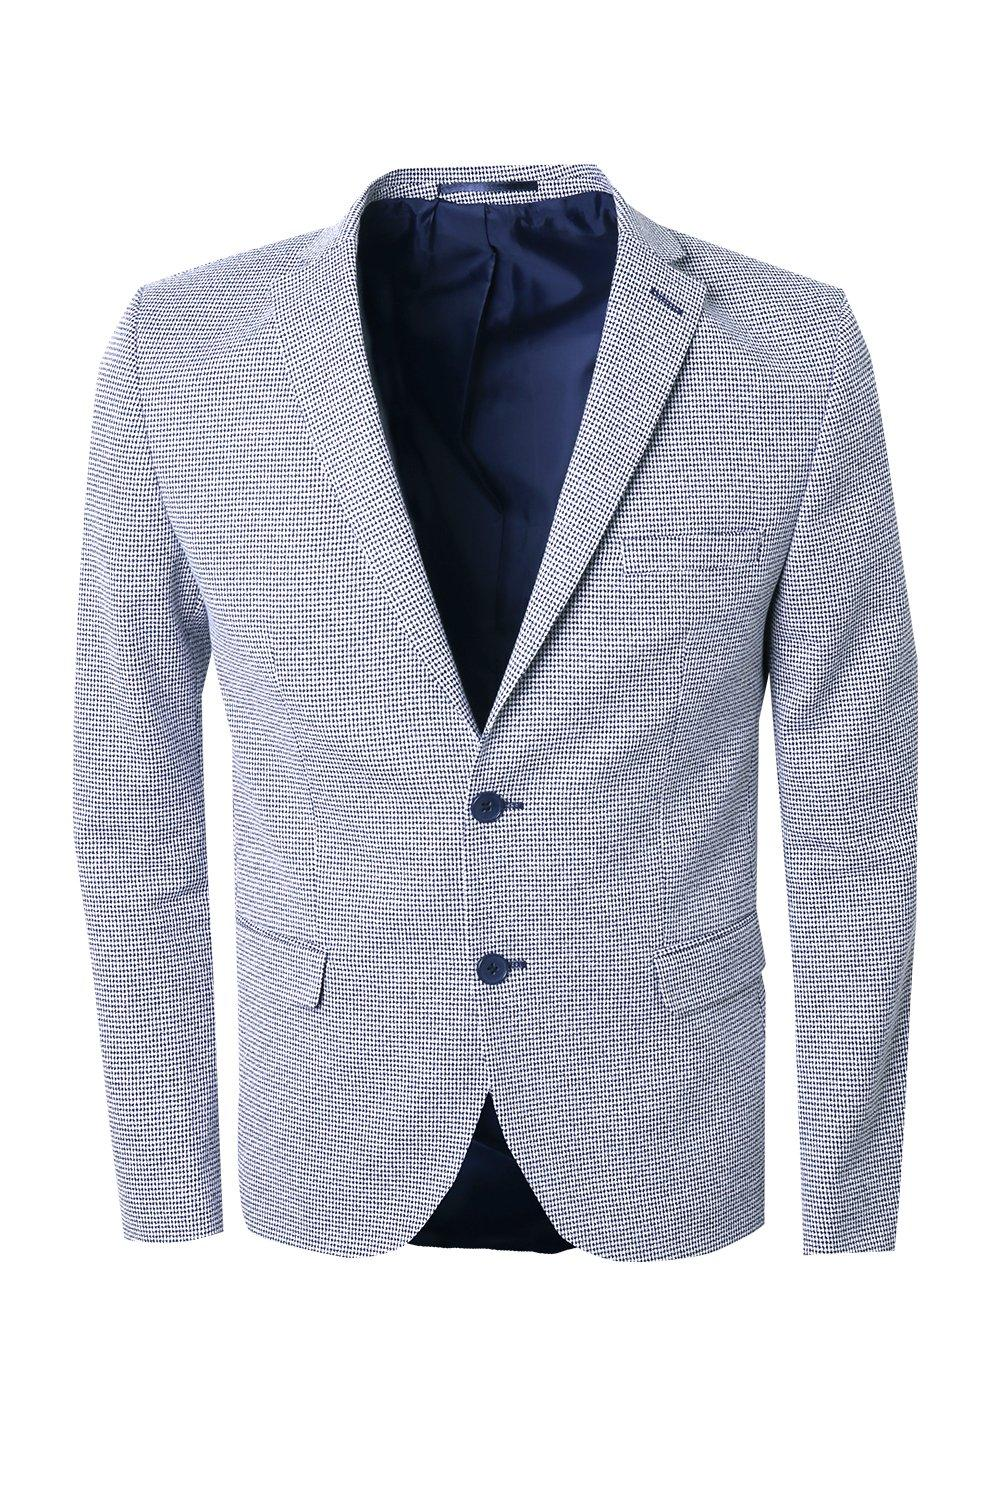 boohooMAN navy Mini Check Skinny Fit Suit Jacket